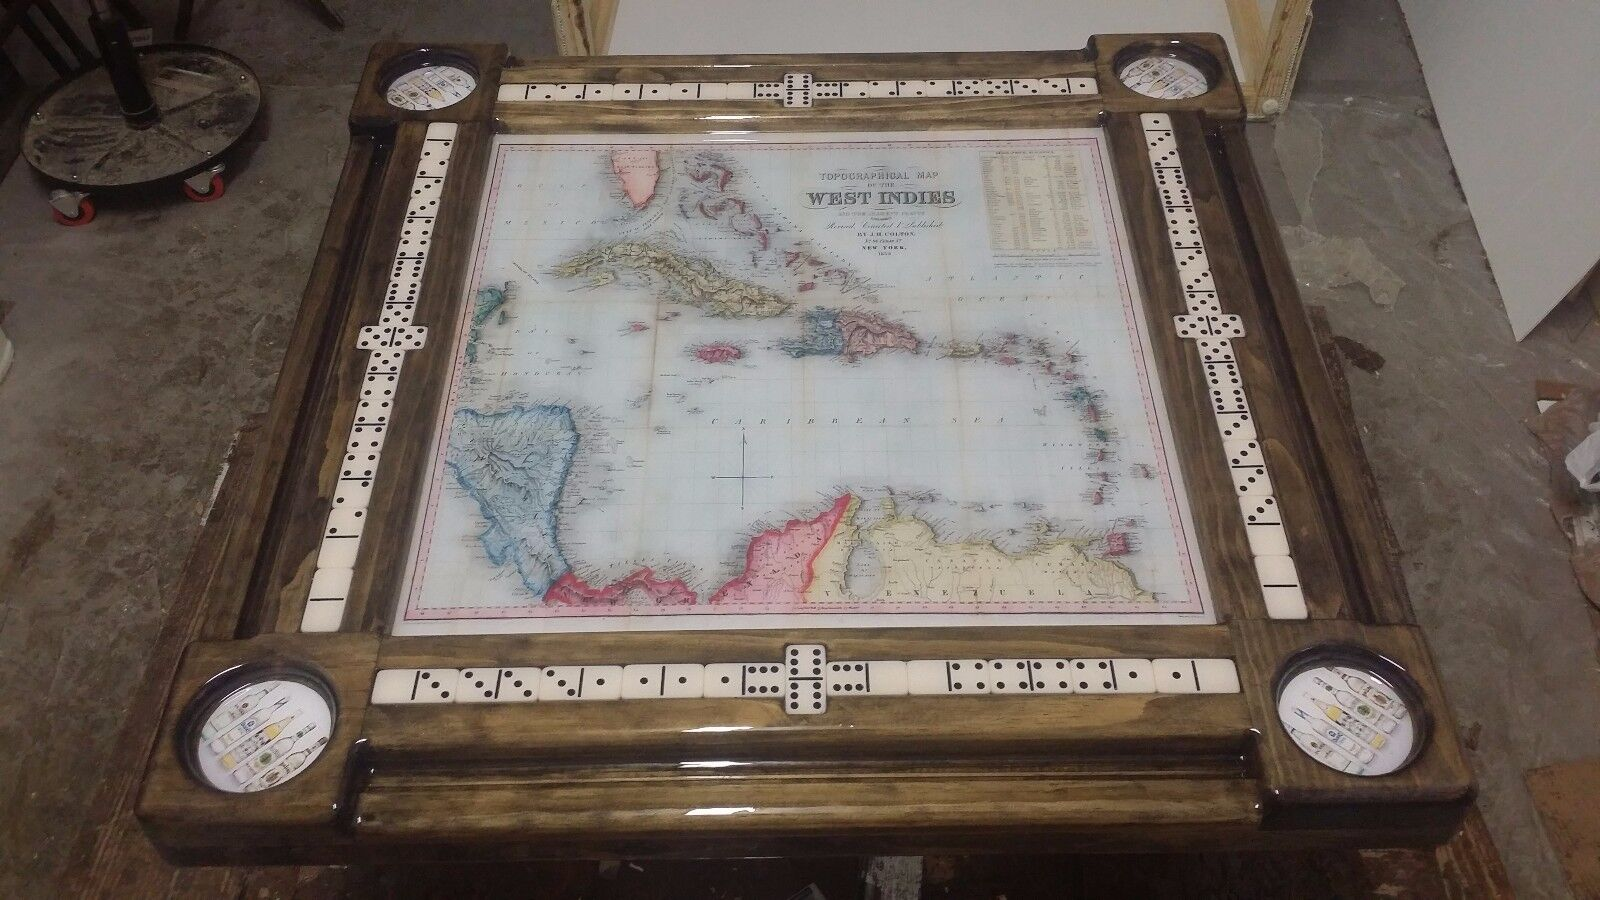 West Indies Map Domino Table by Domino Tables by  Art  Sito ufficiale